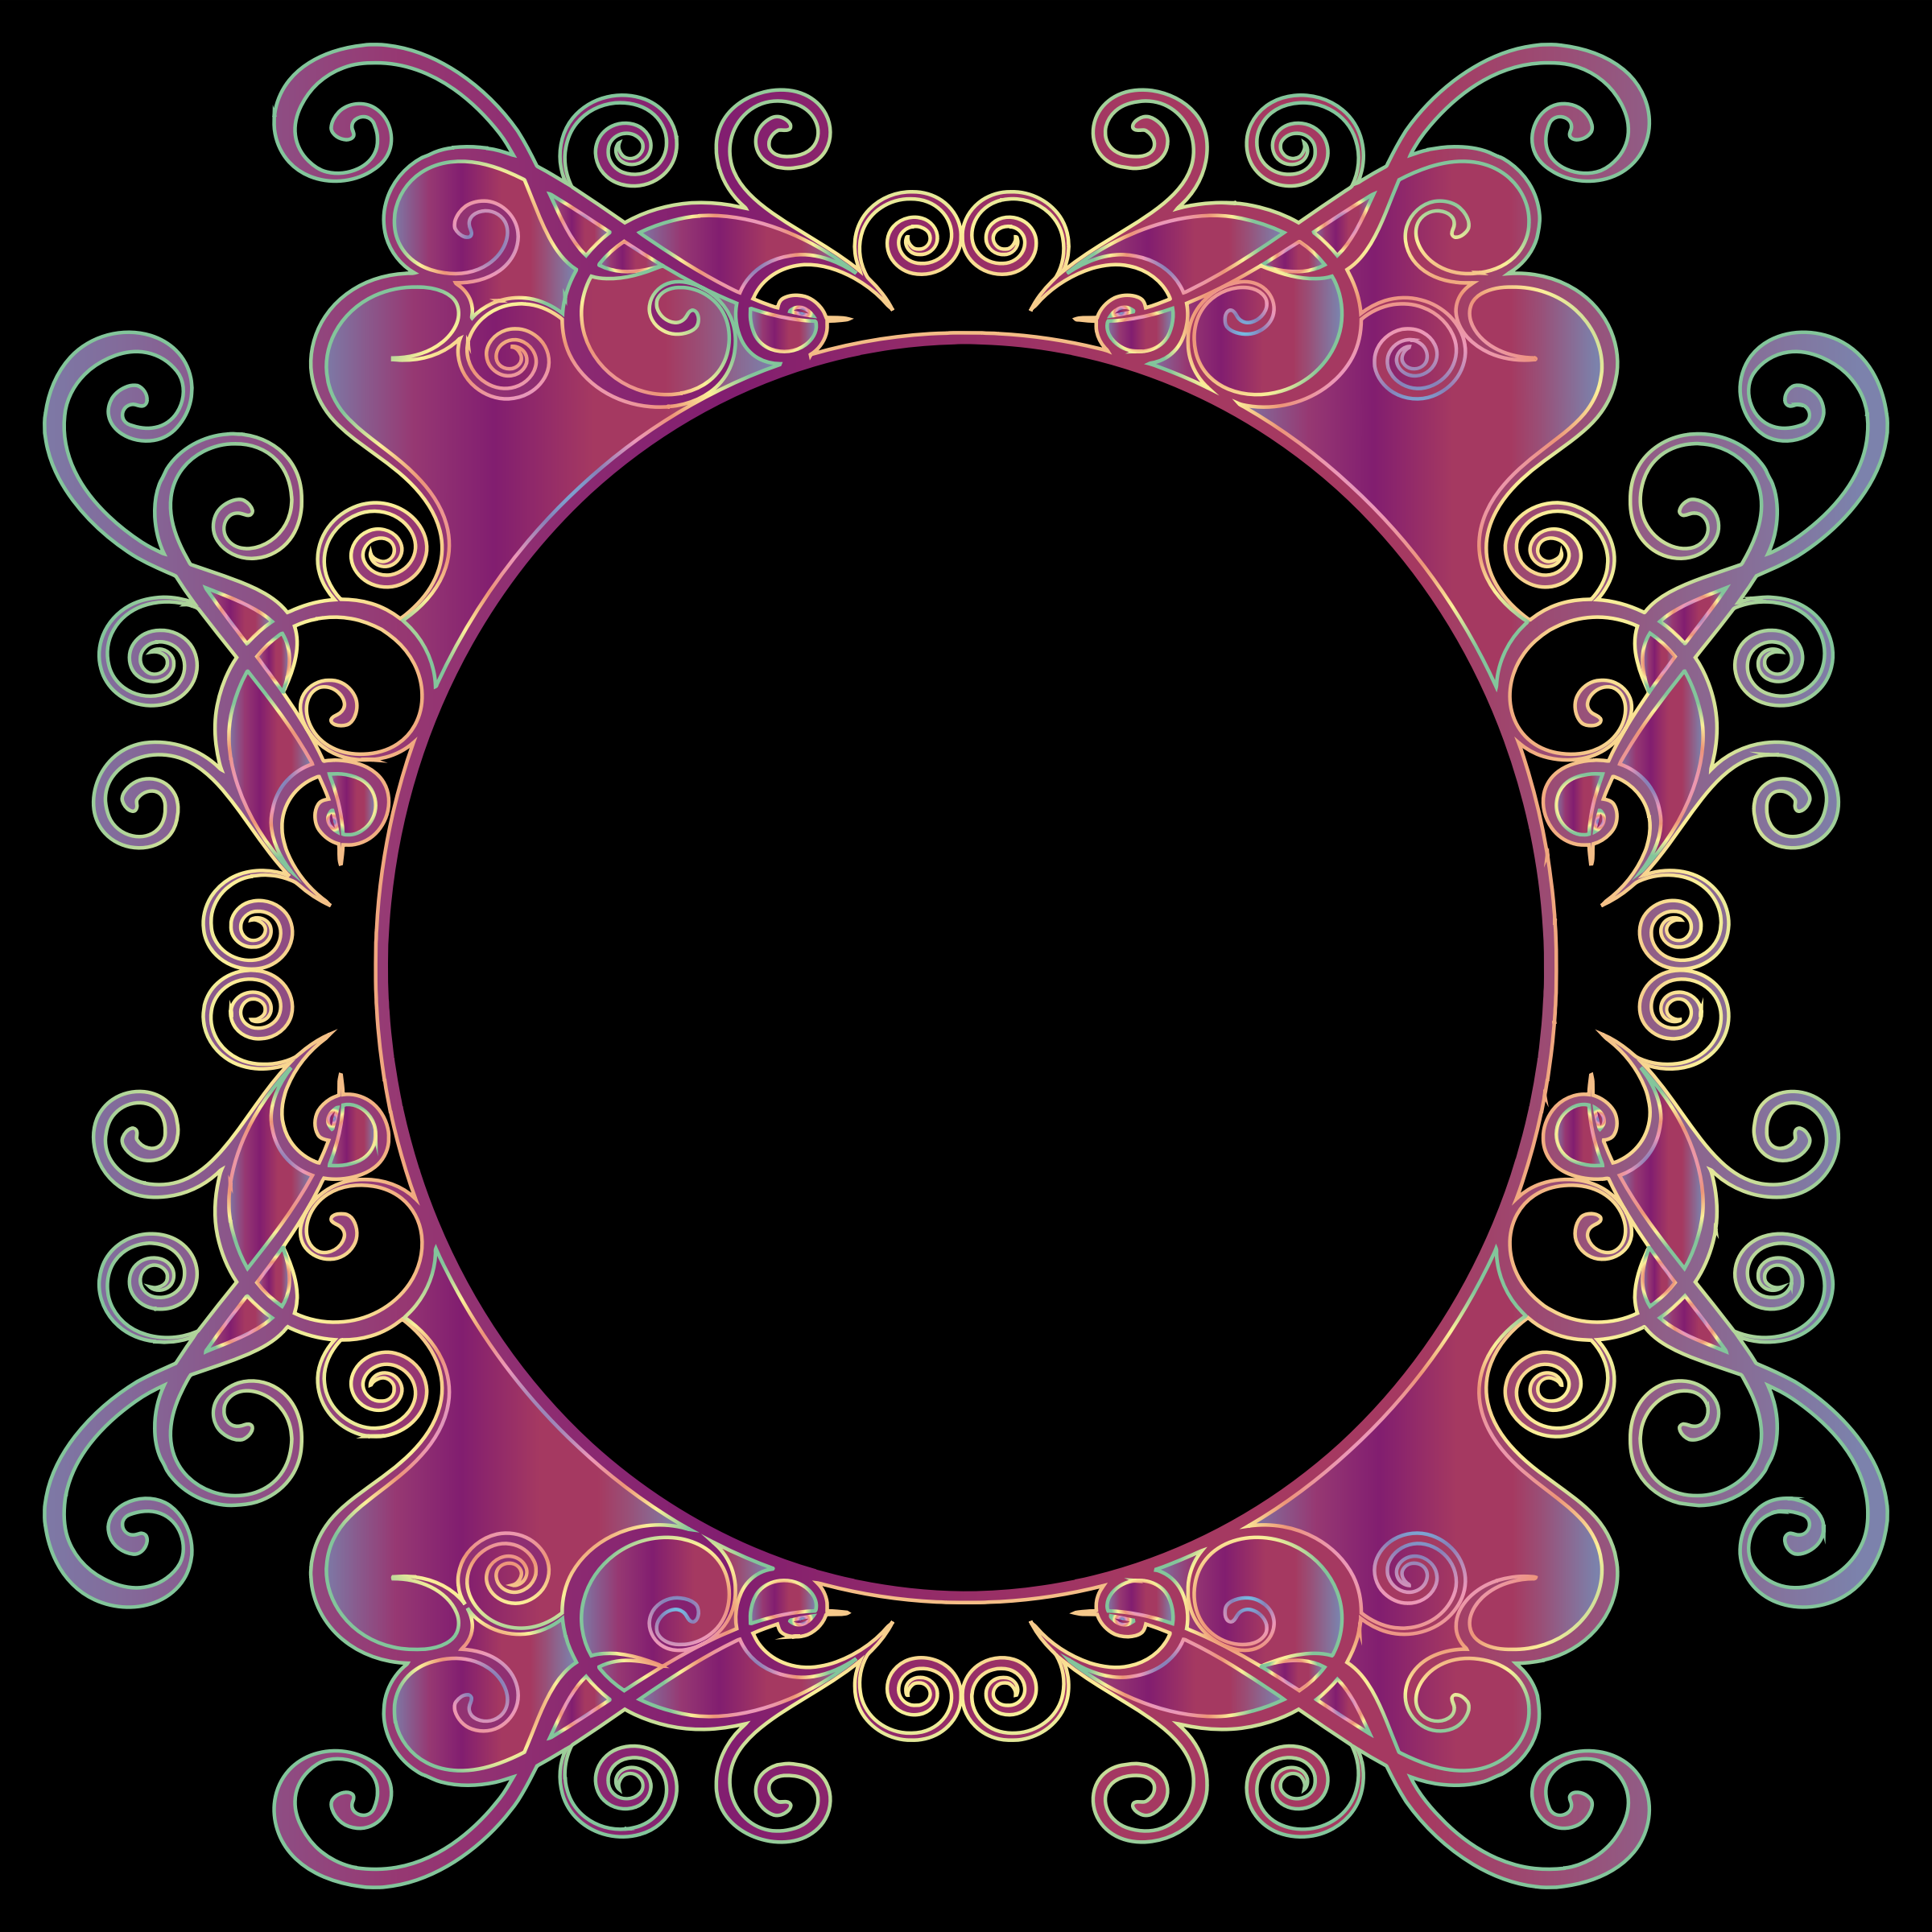 Prismatic Flourish Frame 10 by GDJ